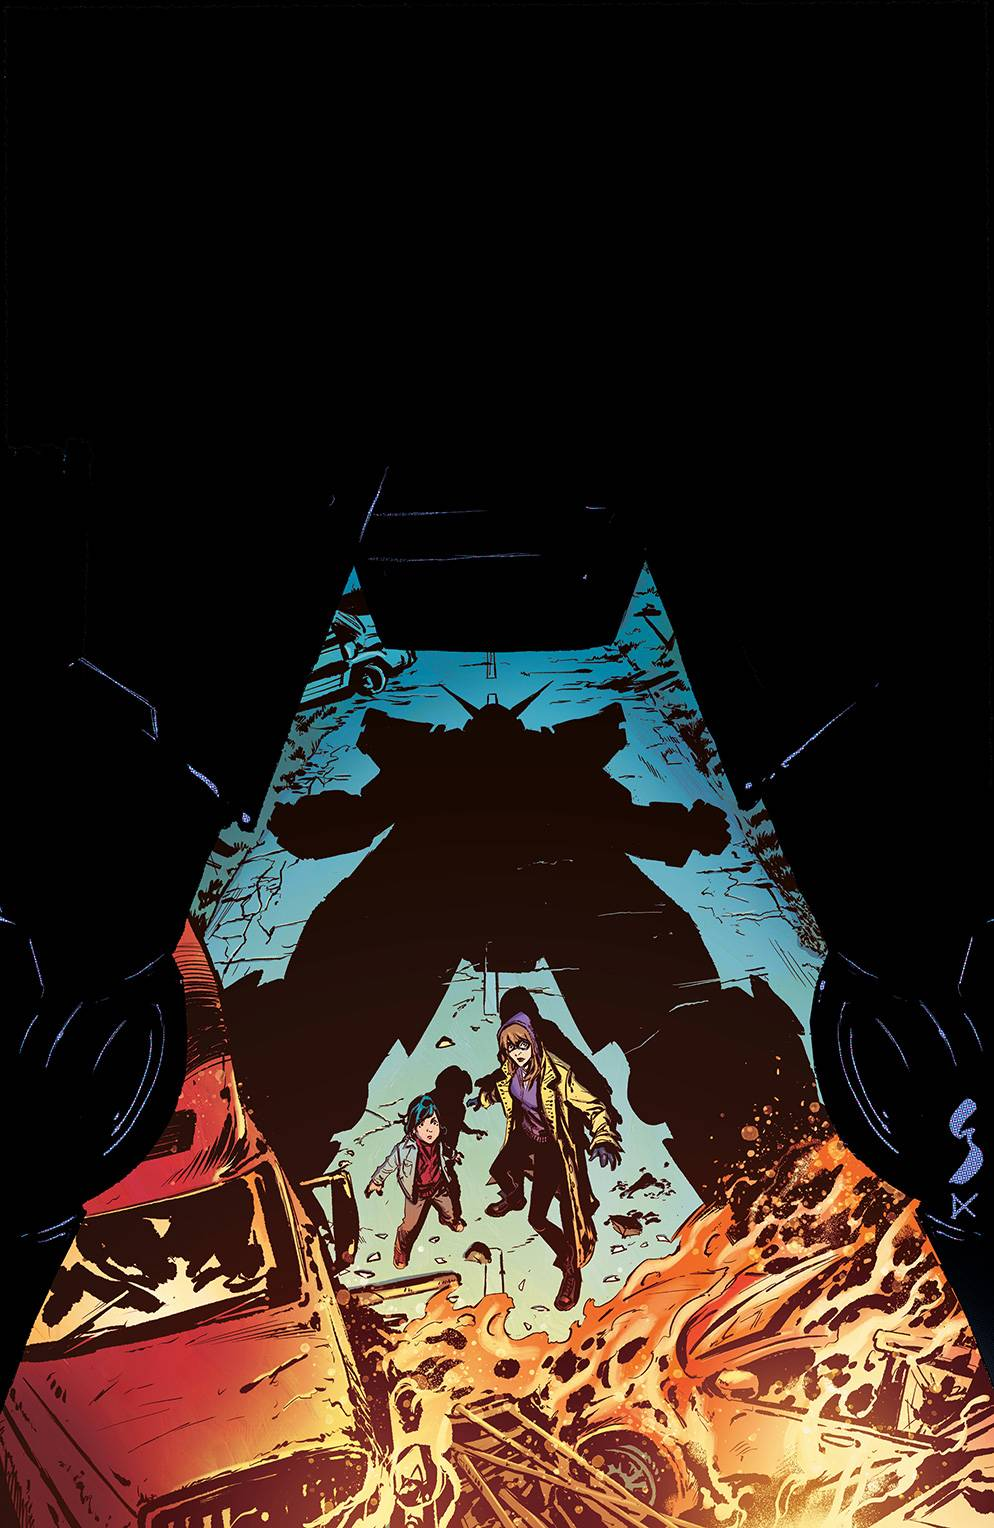 STL180422 ComicList: Image Comics New Releases for 01/06/2021